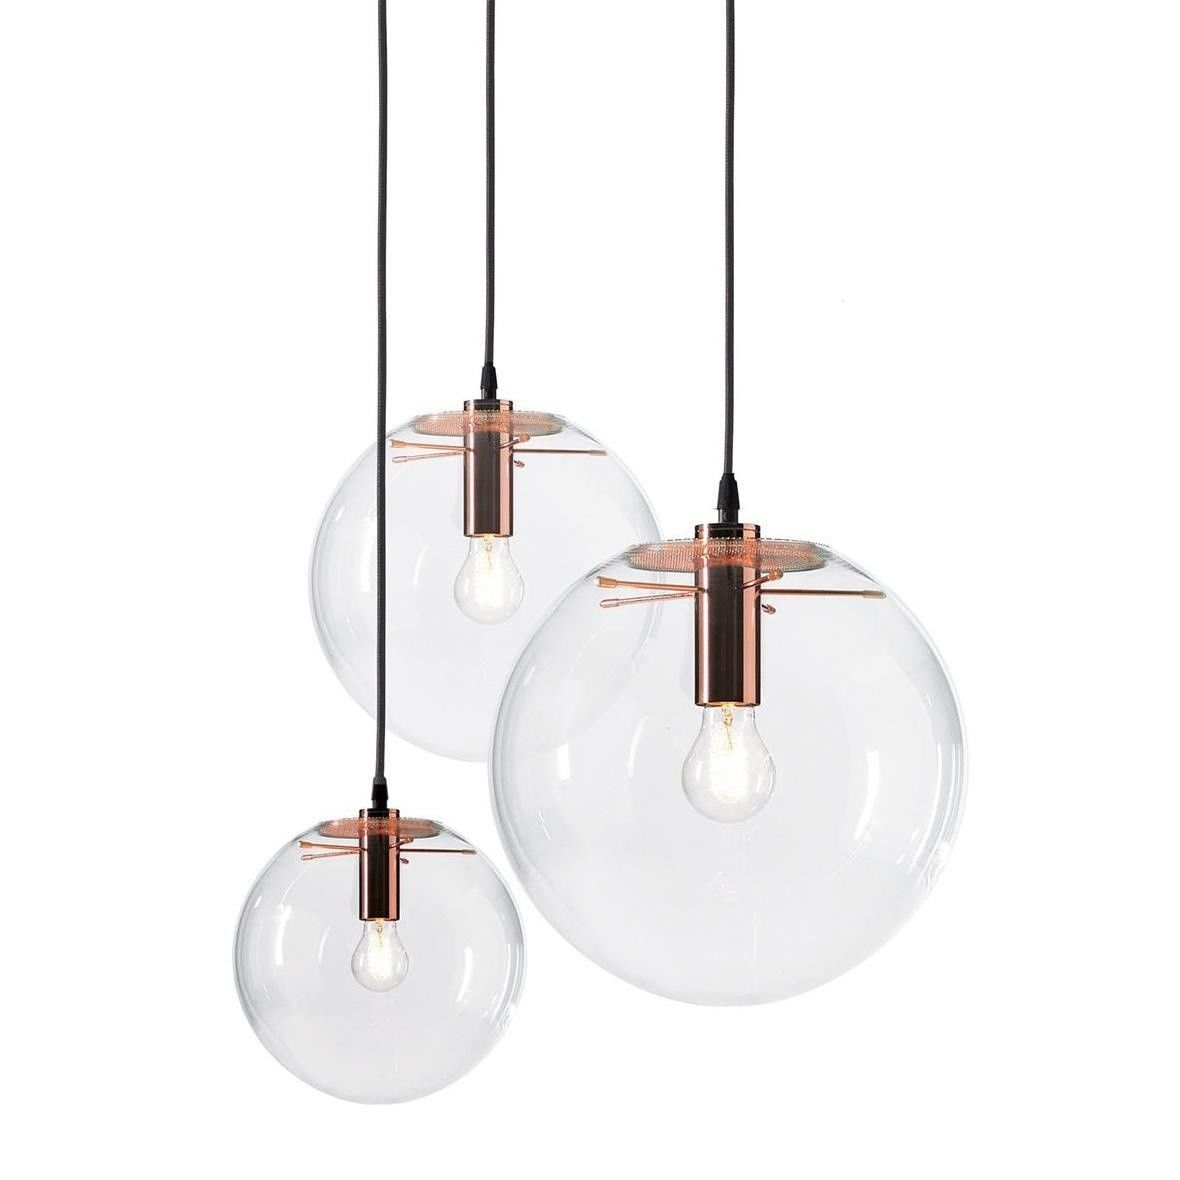 Selene suspension lamp copper classicon suspension for Suspension 4 lampes